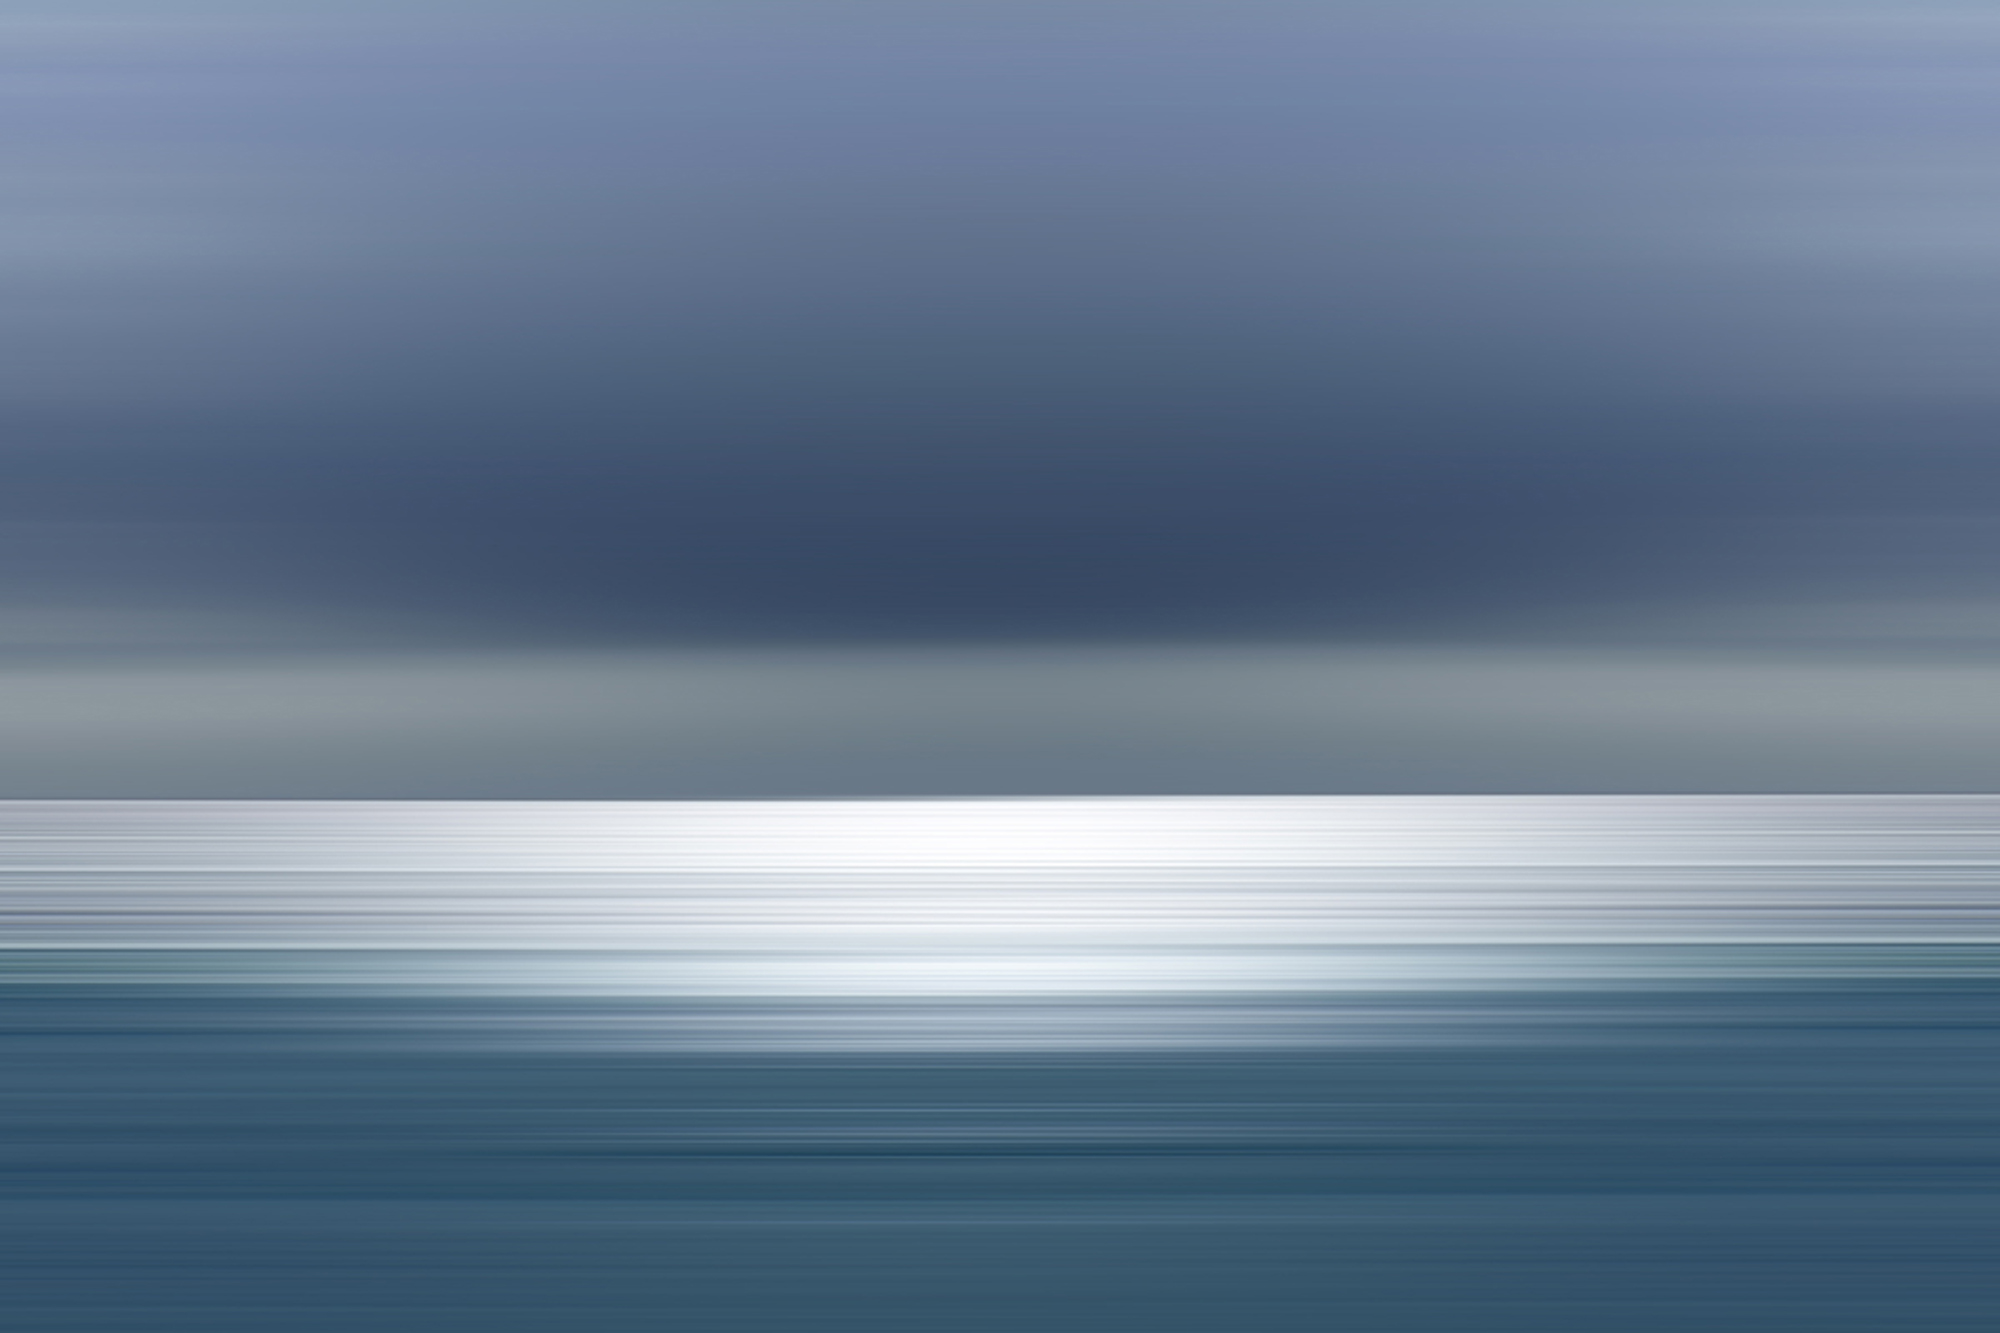 Light and Sea Moonlighting, 2018, photograph on plexiglass, 42 x 60 in, edition of 10, $9,500 (other sizes available, priced accordingly)